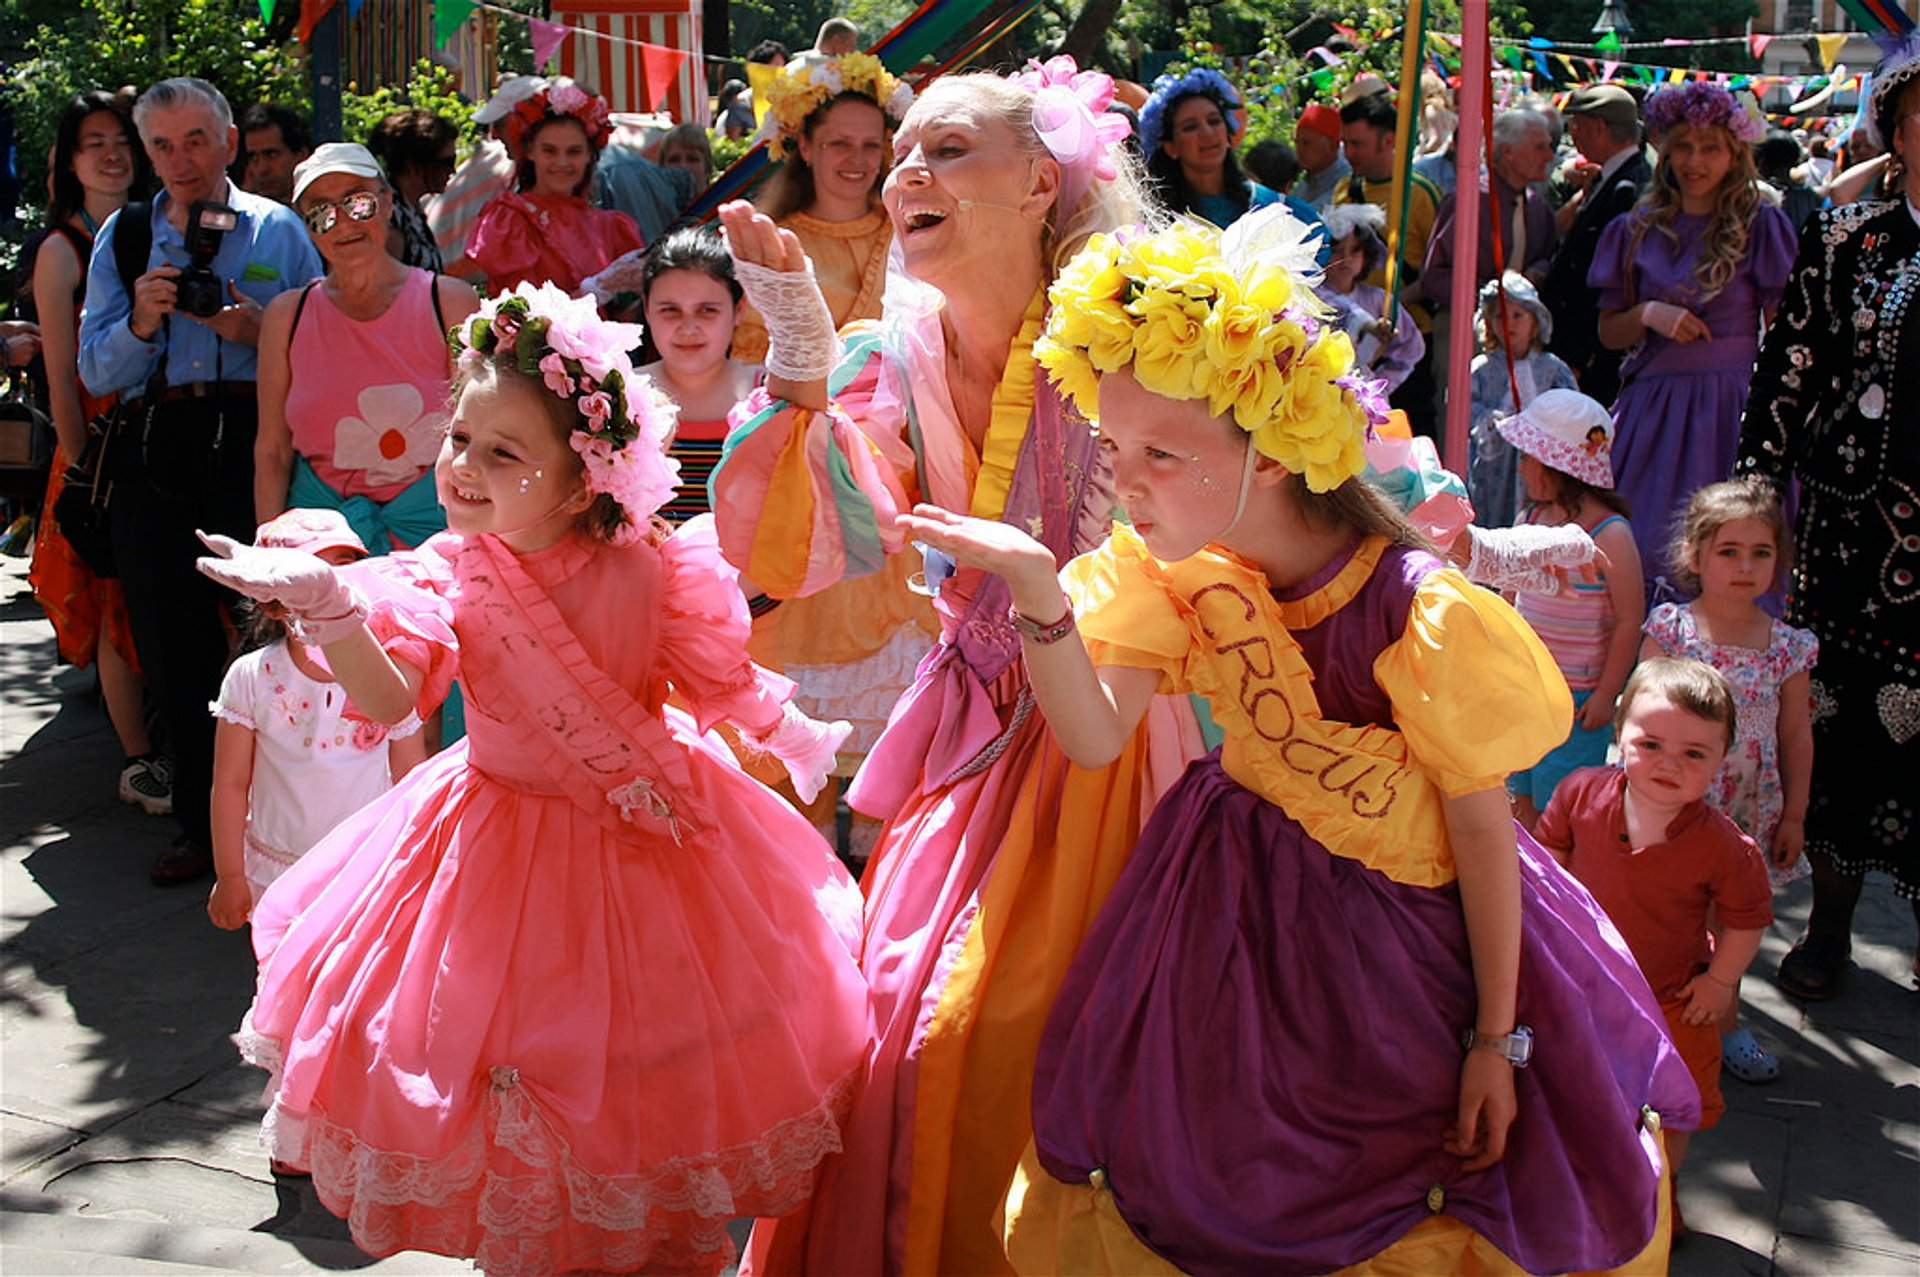 Covent Garden May Fayre and Puppet Festival in London - Best Season 2020